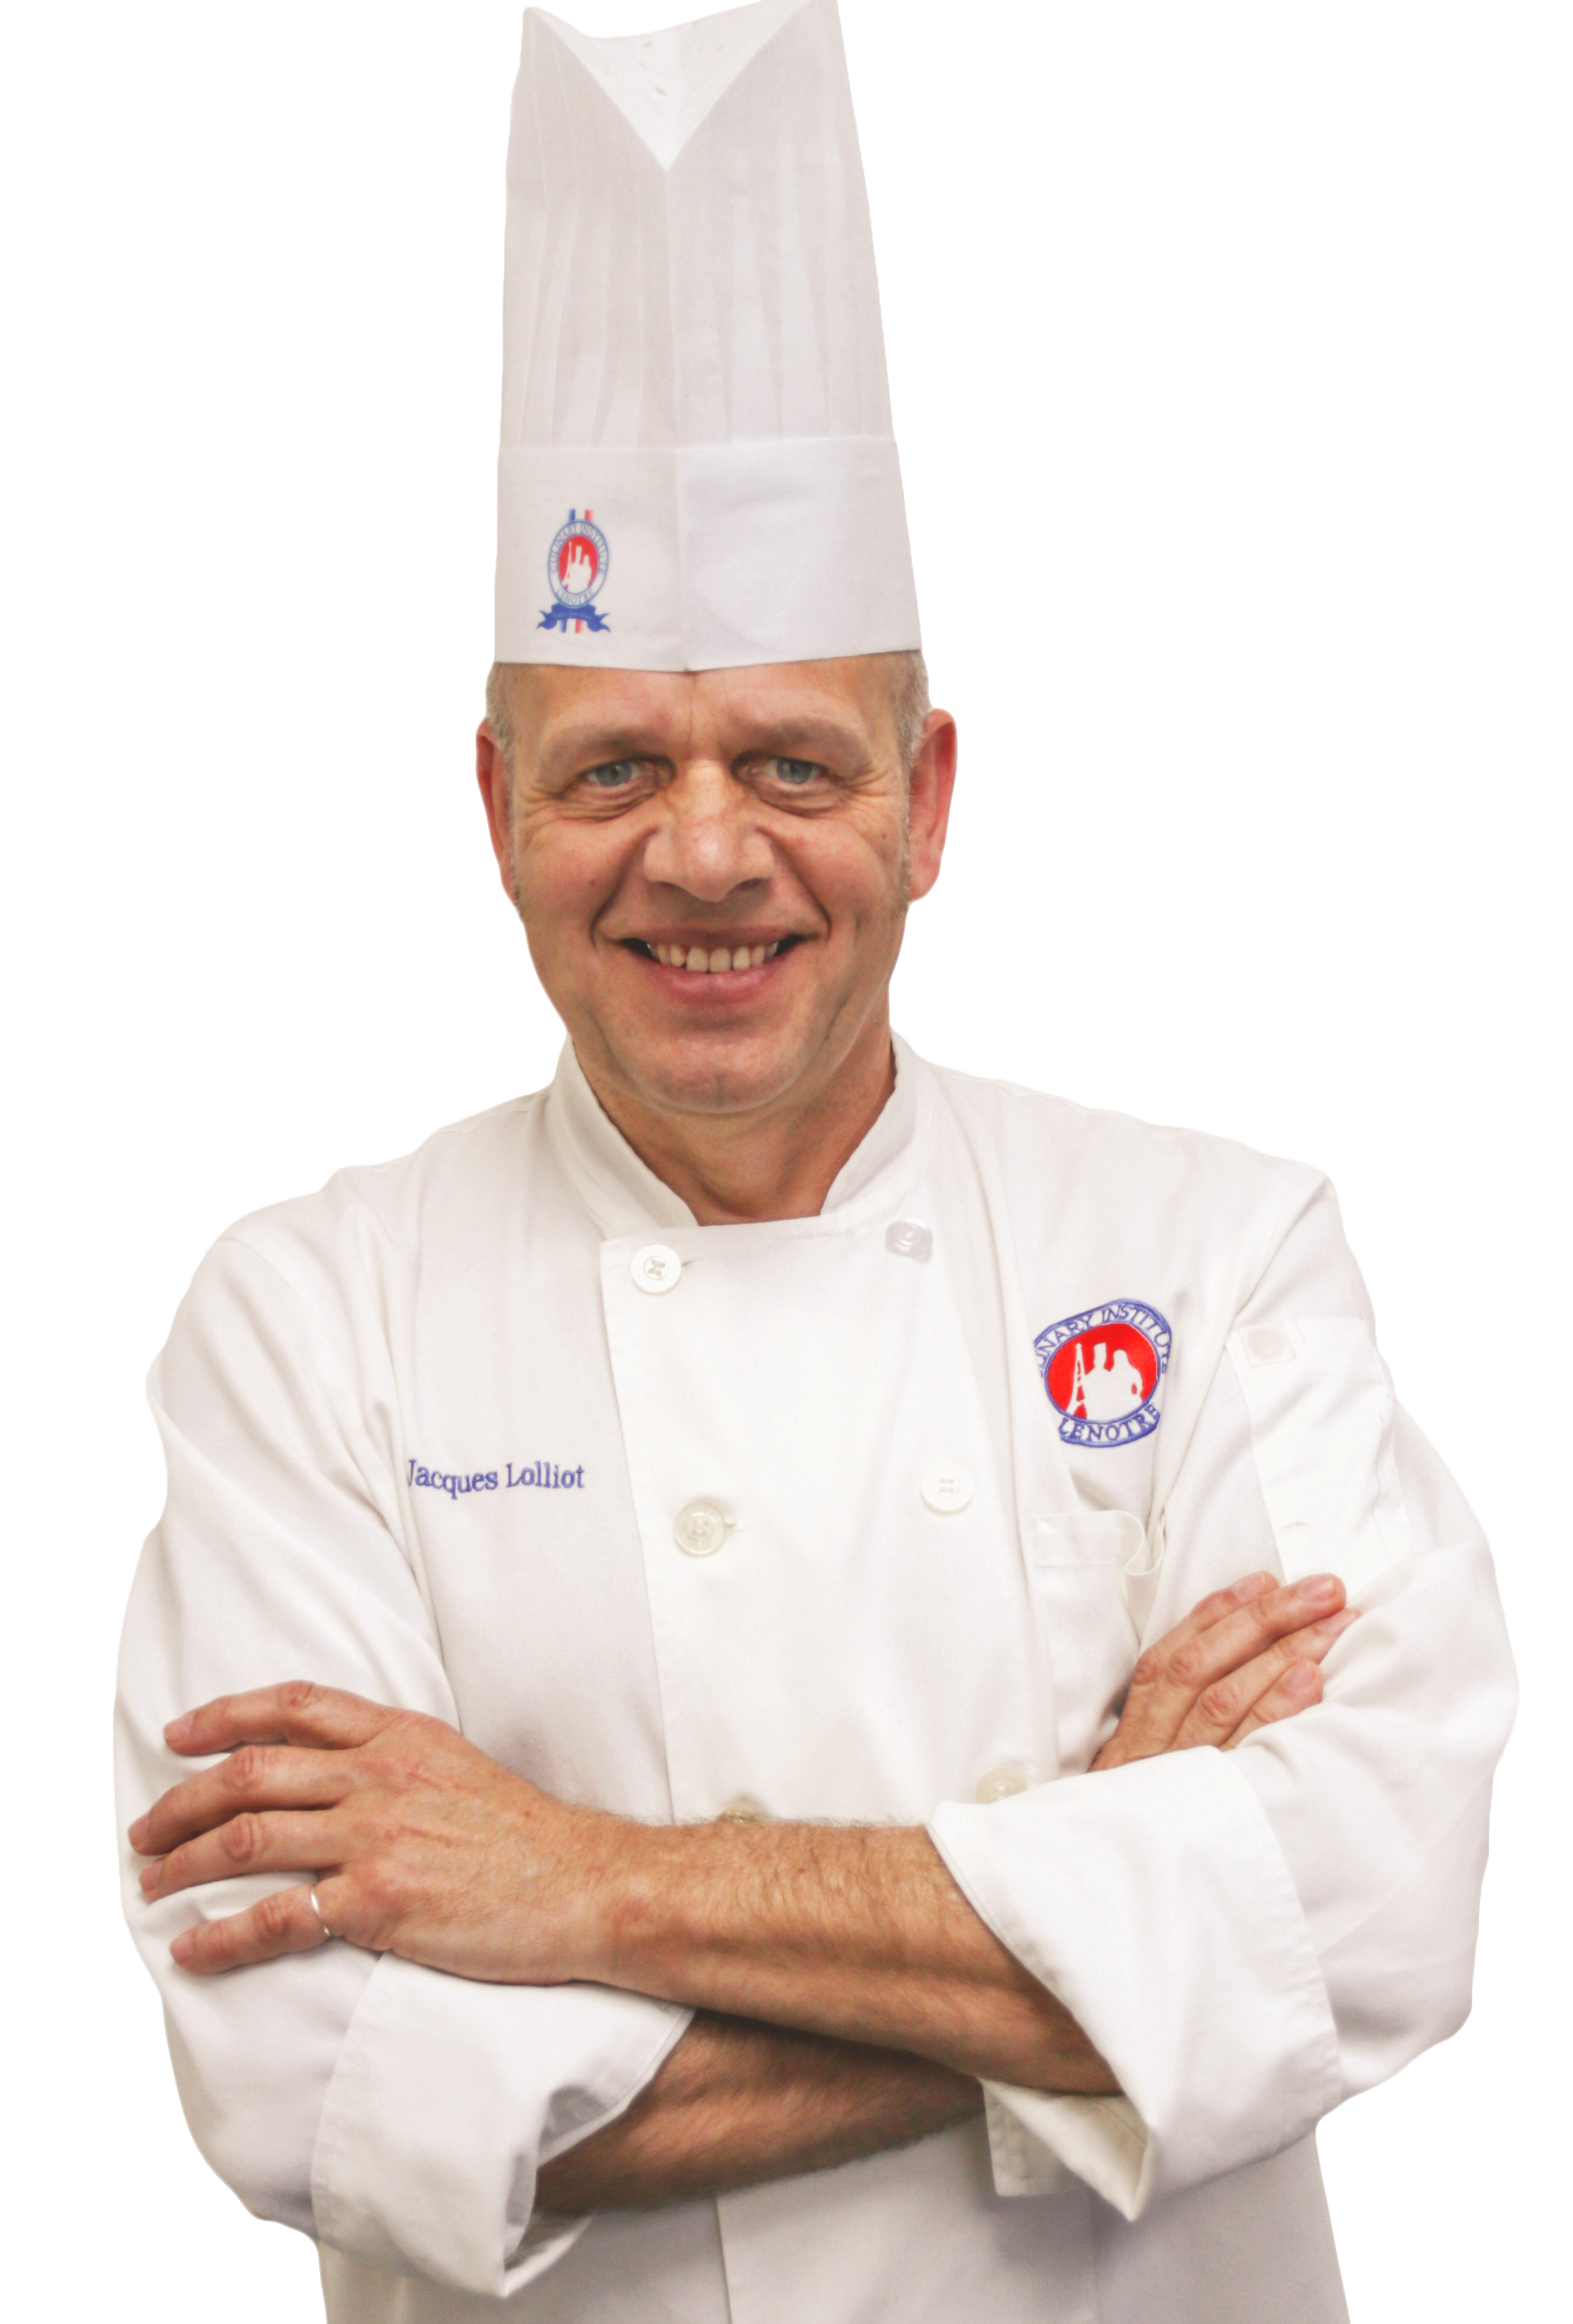 Baker drawing executive chef. Meet our team culinary